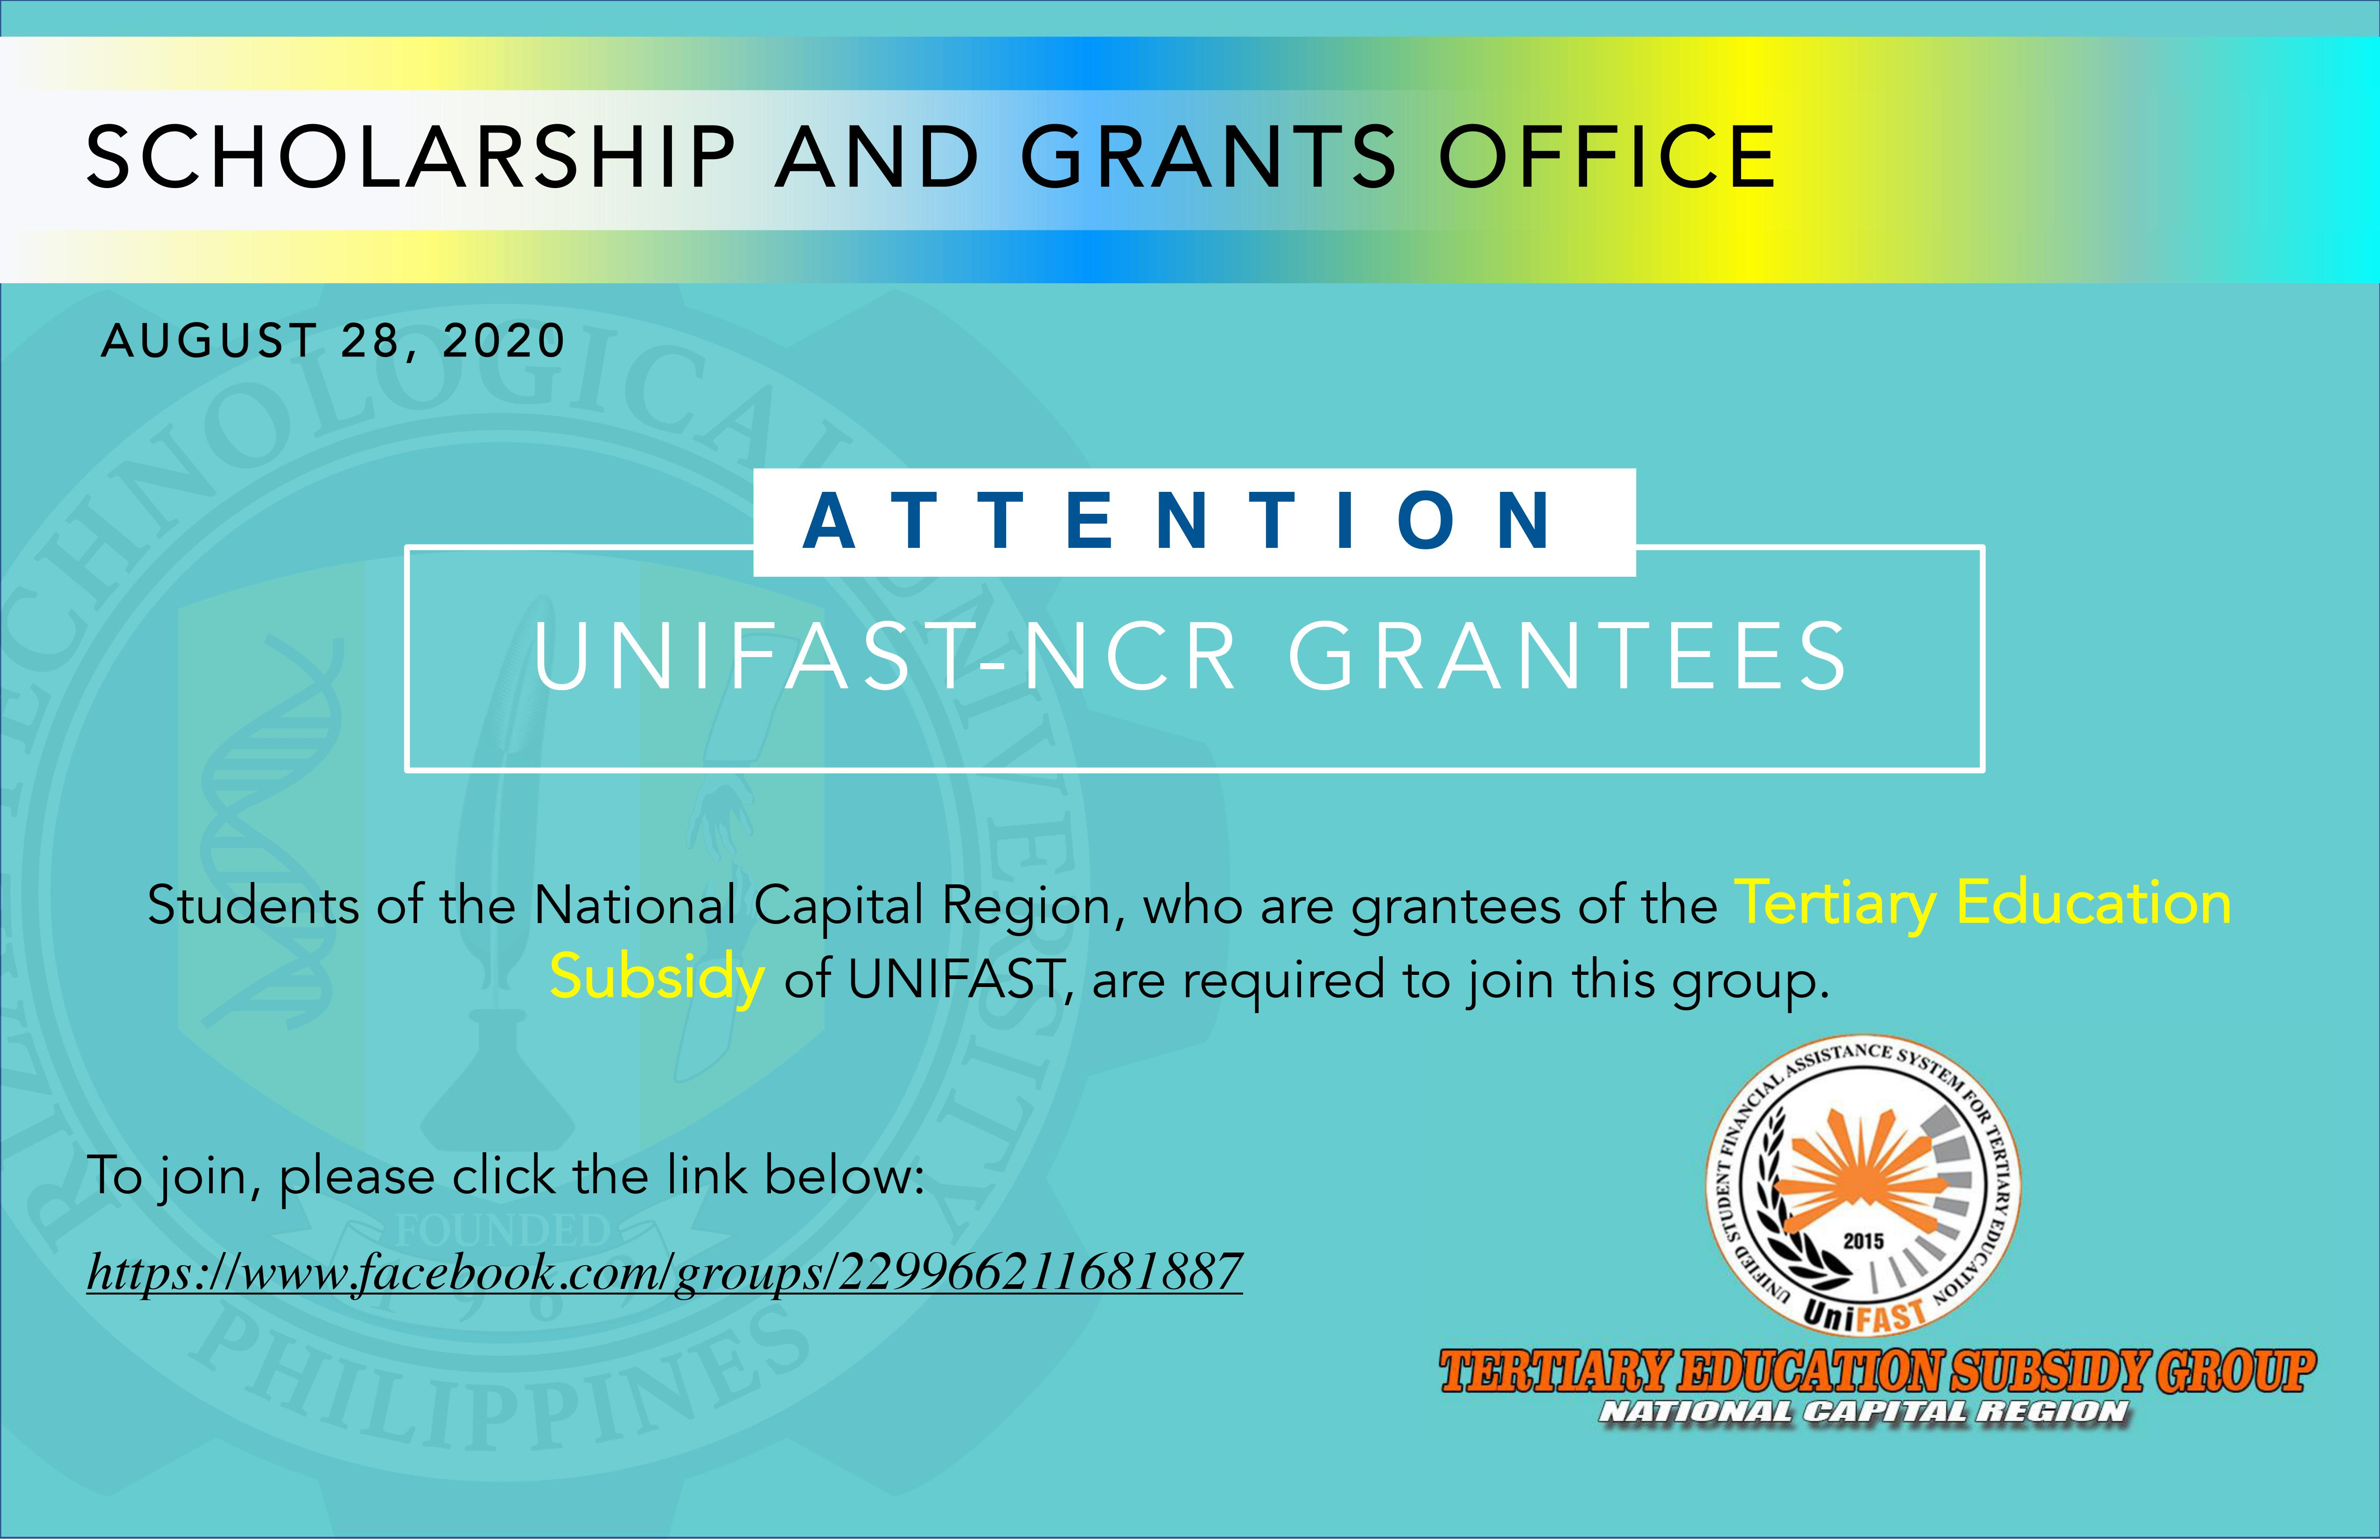 UNIFAST-NCR GRANTEES